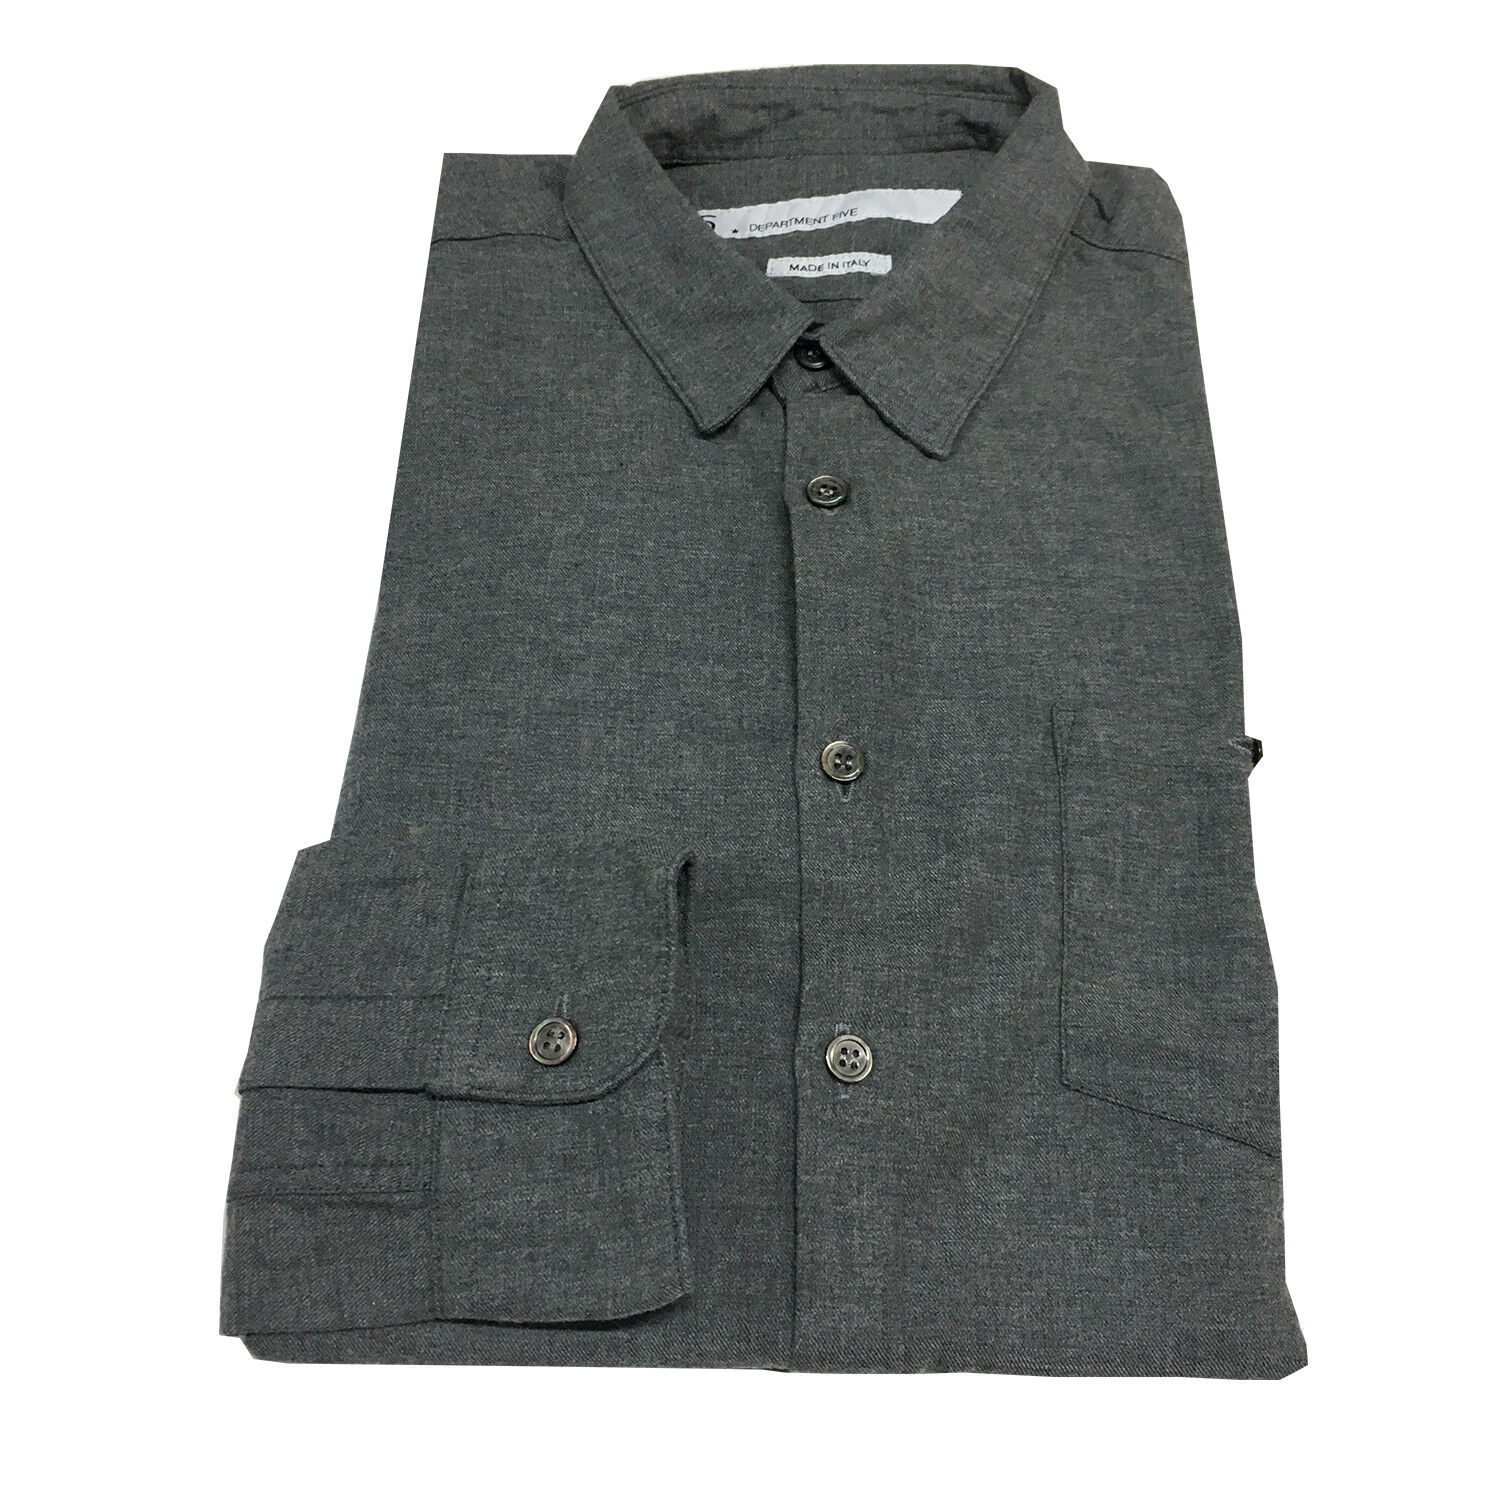 DEPARTMENT 5 men's shirts flannel grey 100%cotton MADE IN ITALY